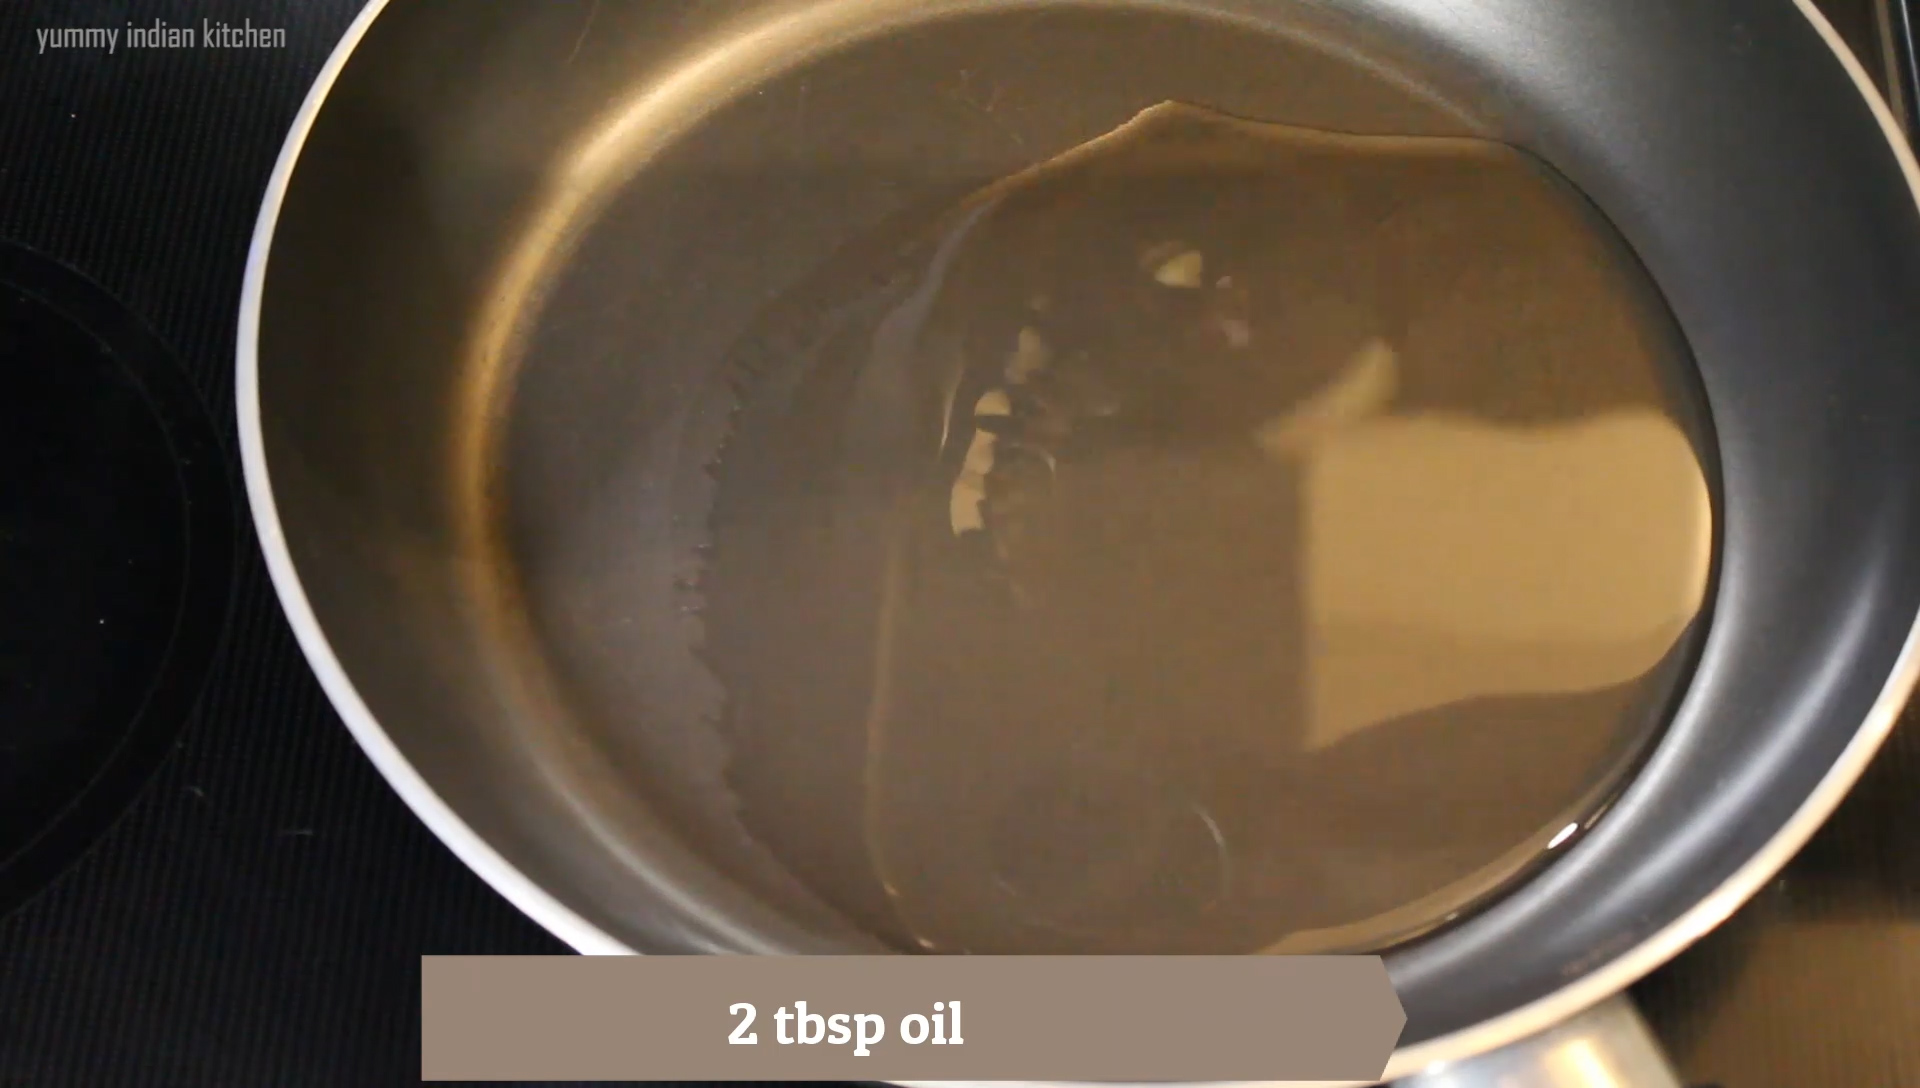 oil heating in a pan to make egg fry